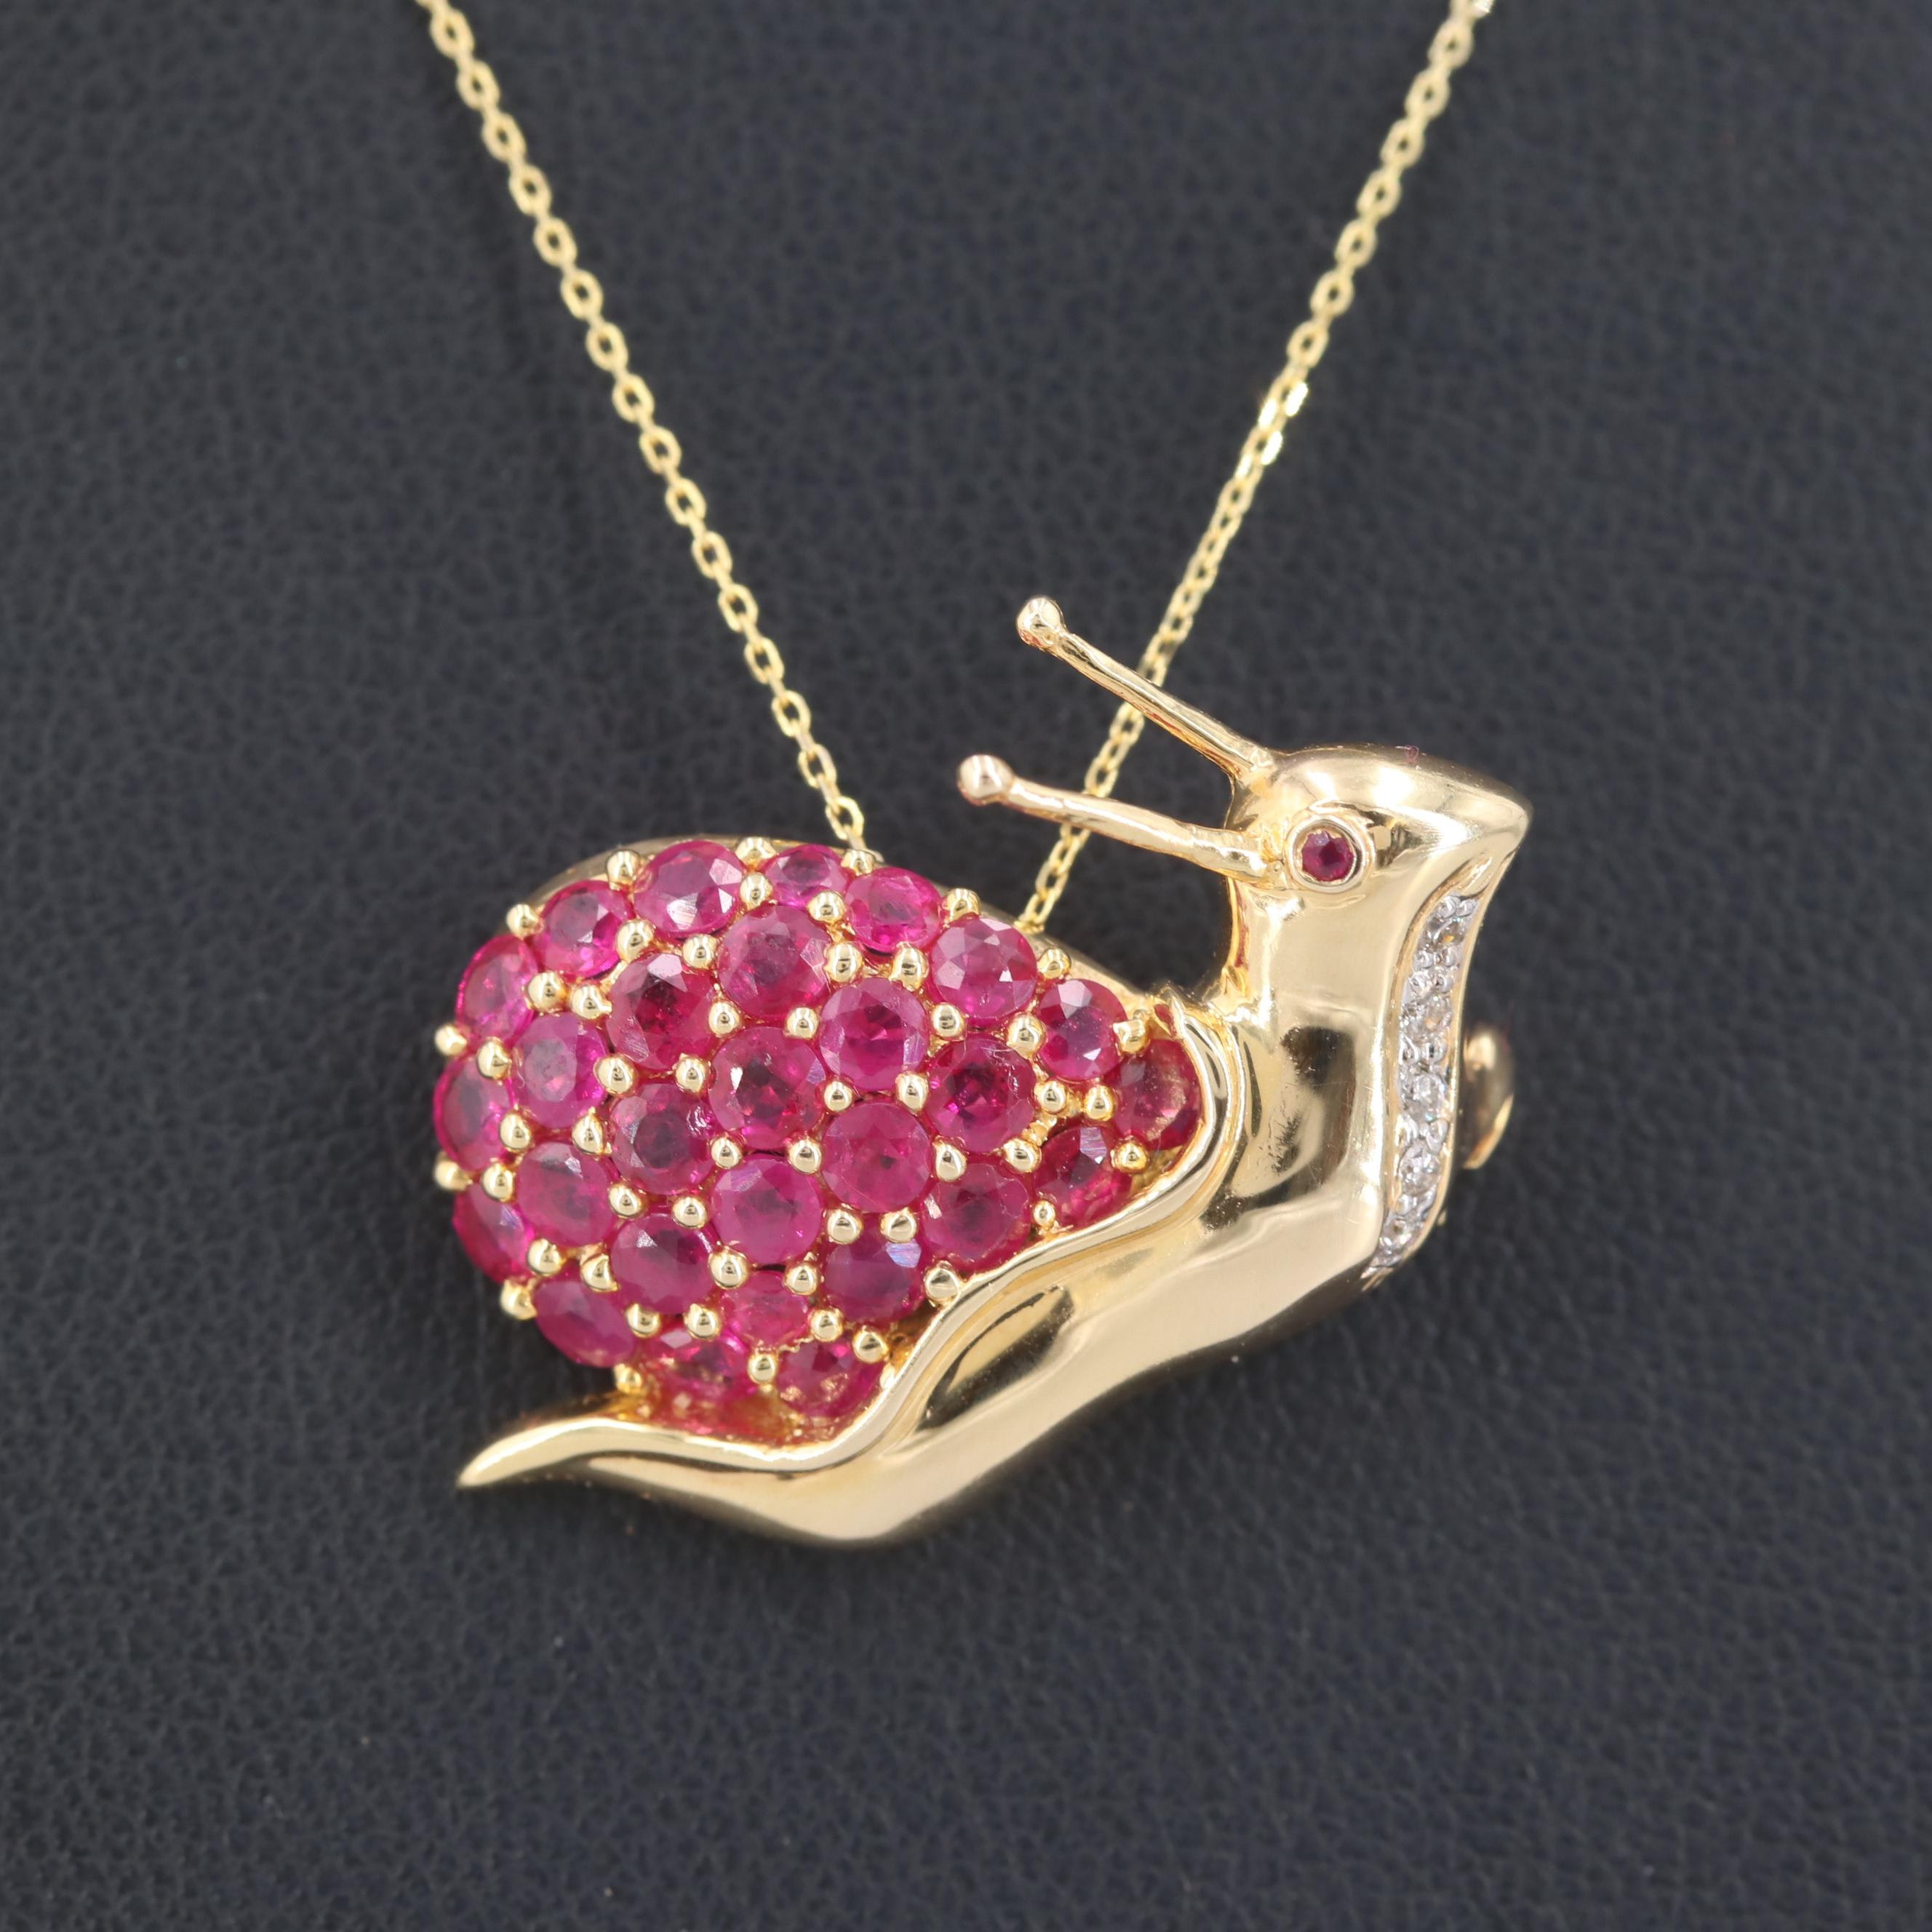 14K Yellow Gold Ruby and Diamond Converter Brooch Necklace